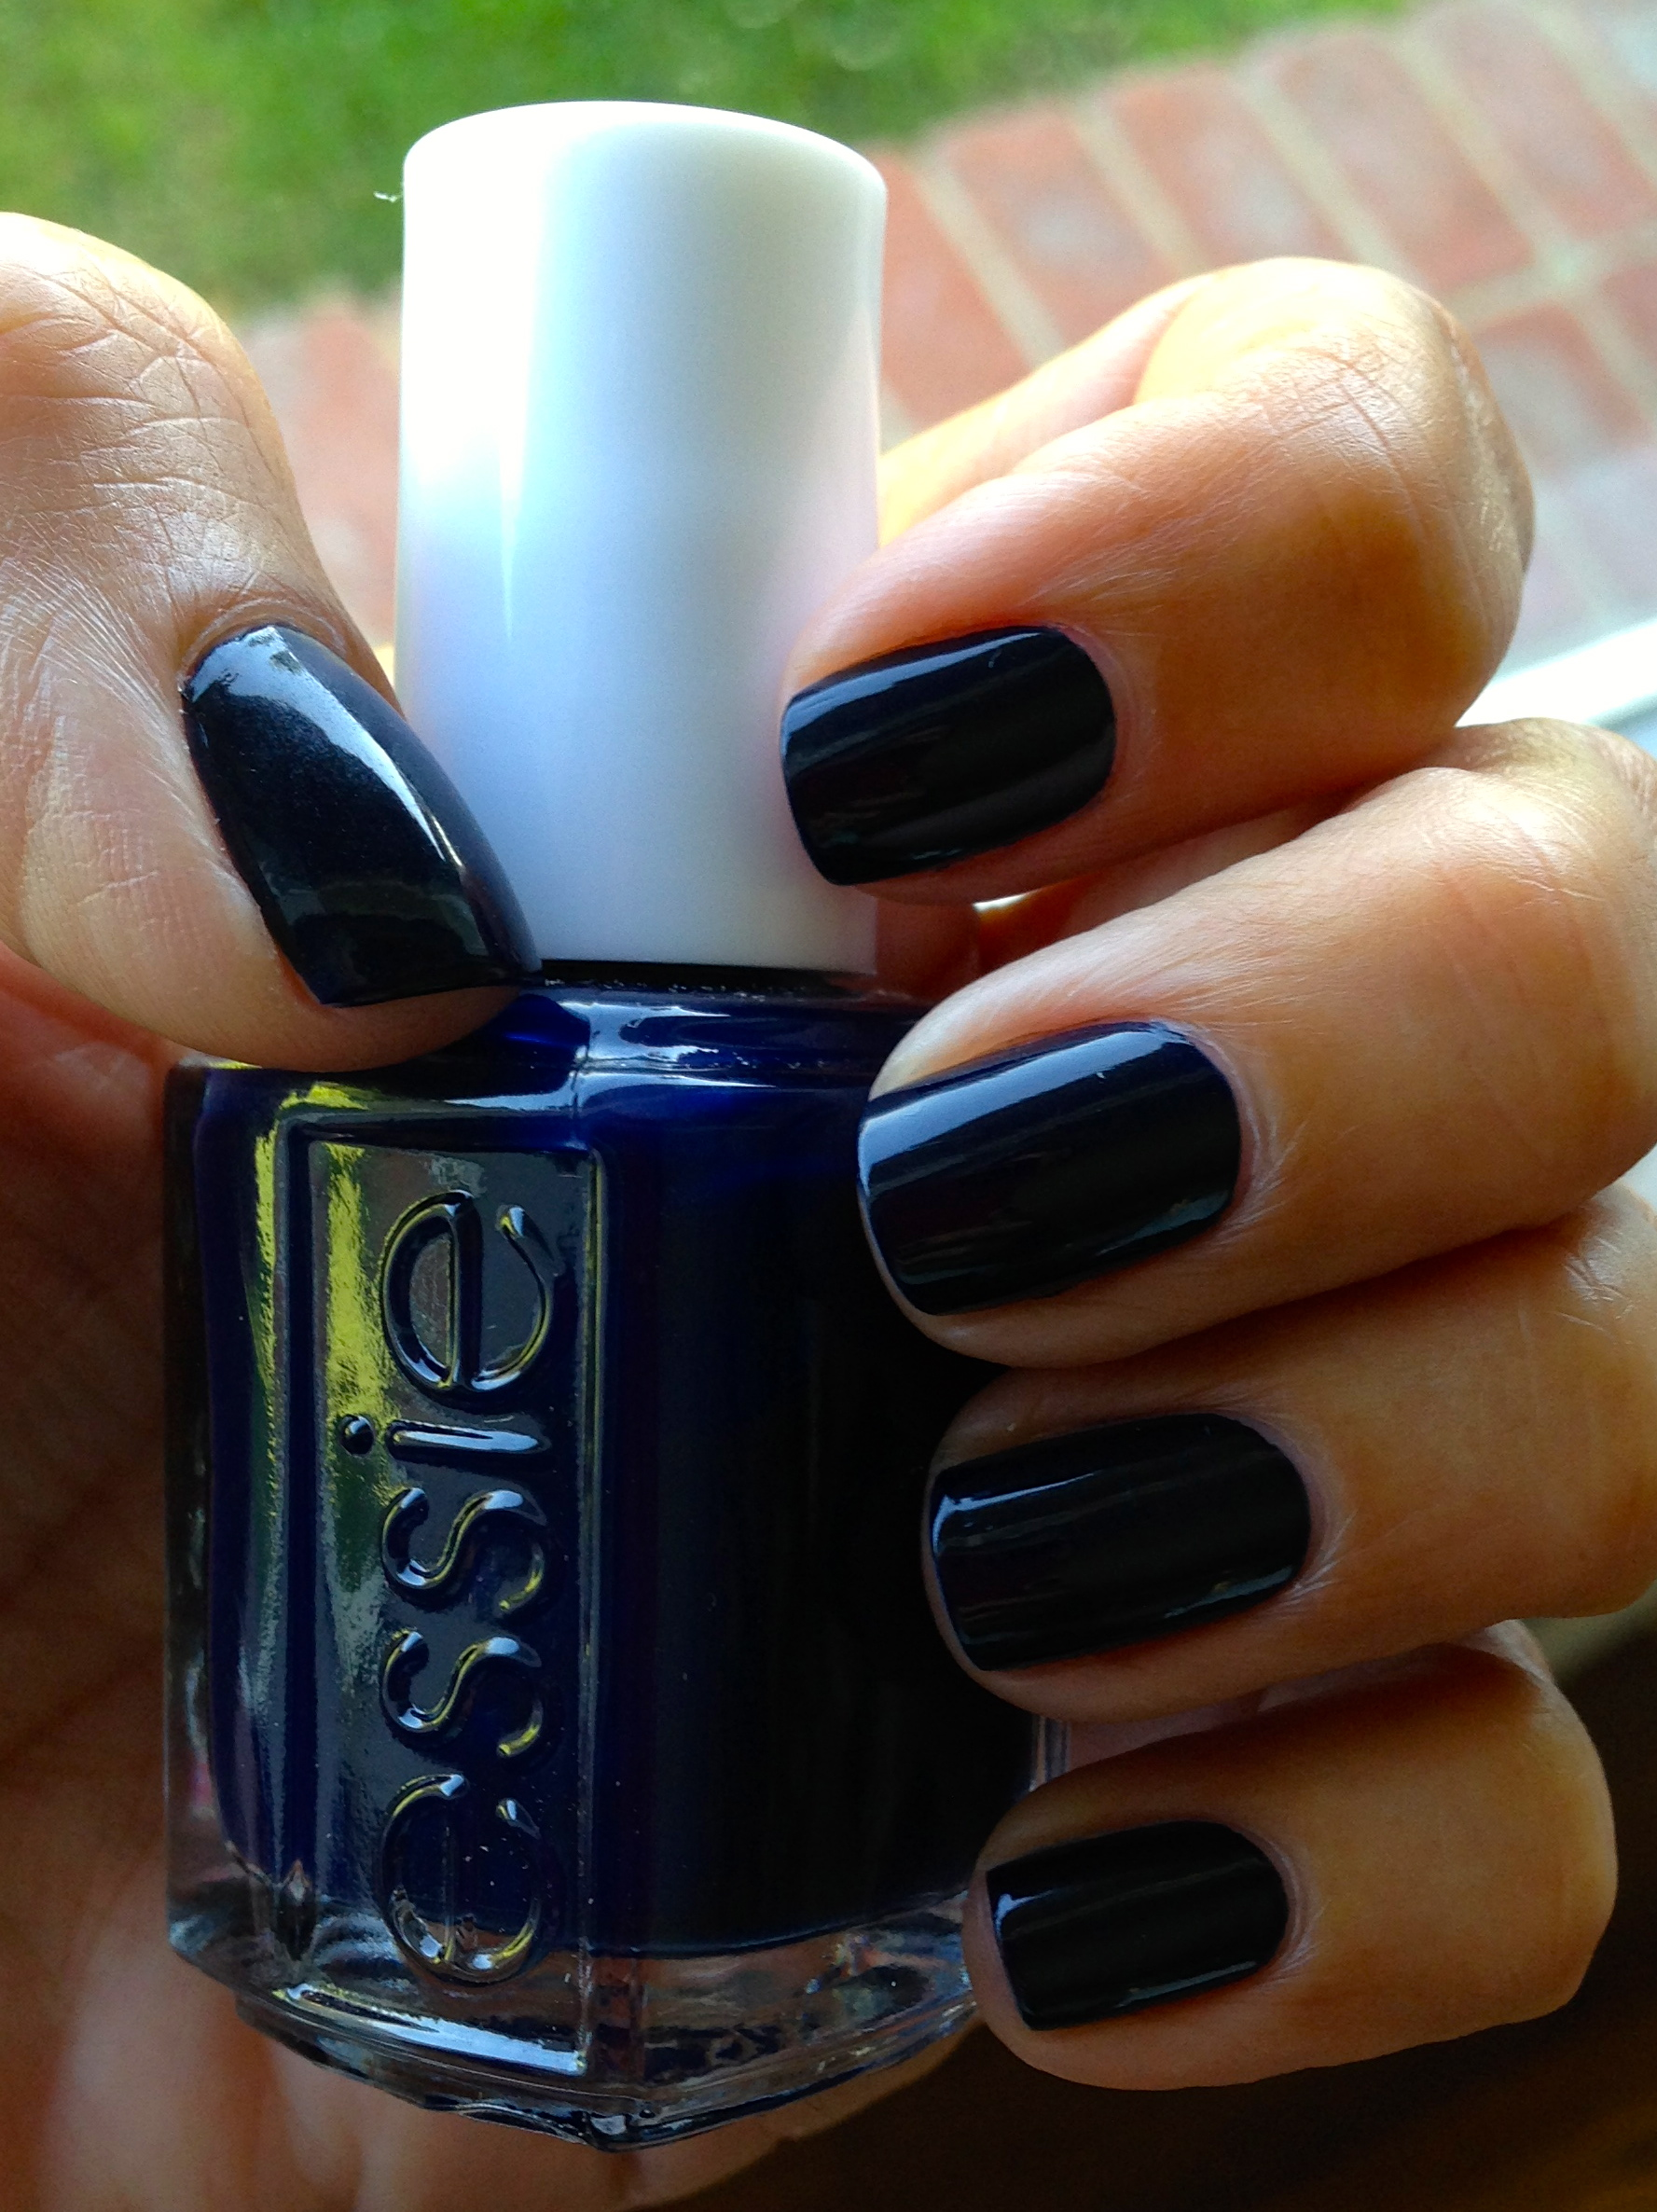 Nails are short with rounded corners. Essie makes the best deep, dark blue color for Fall,  After School Boy Blazer, $8.00